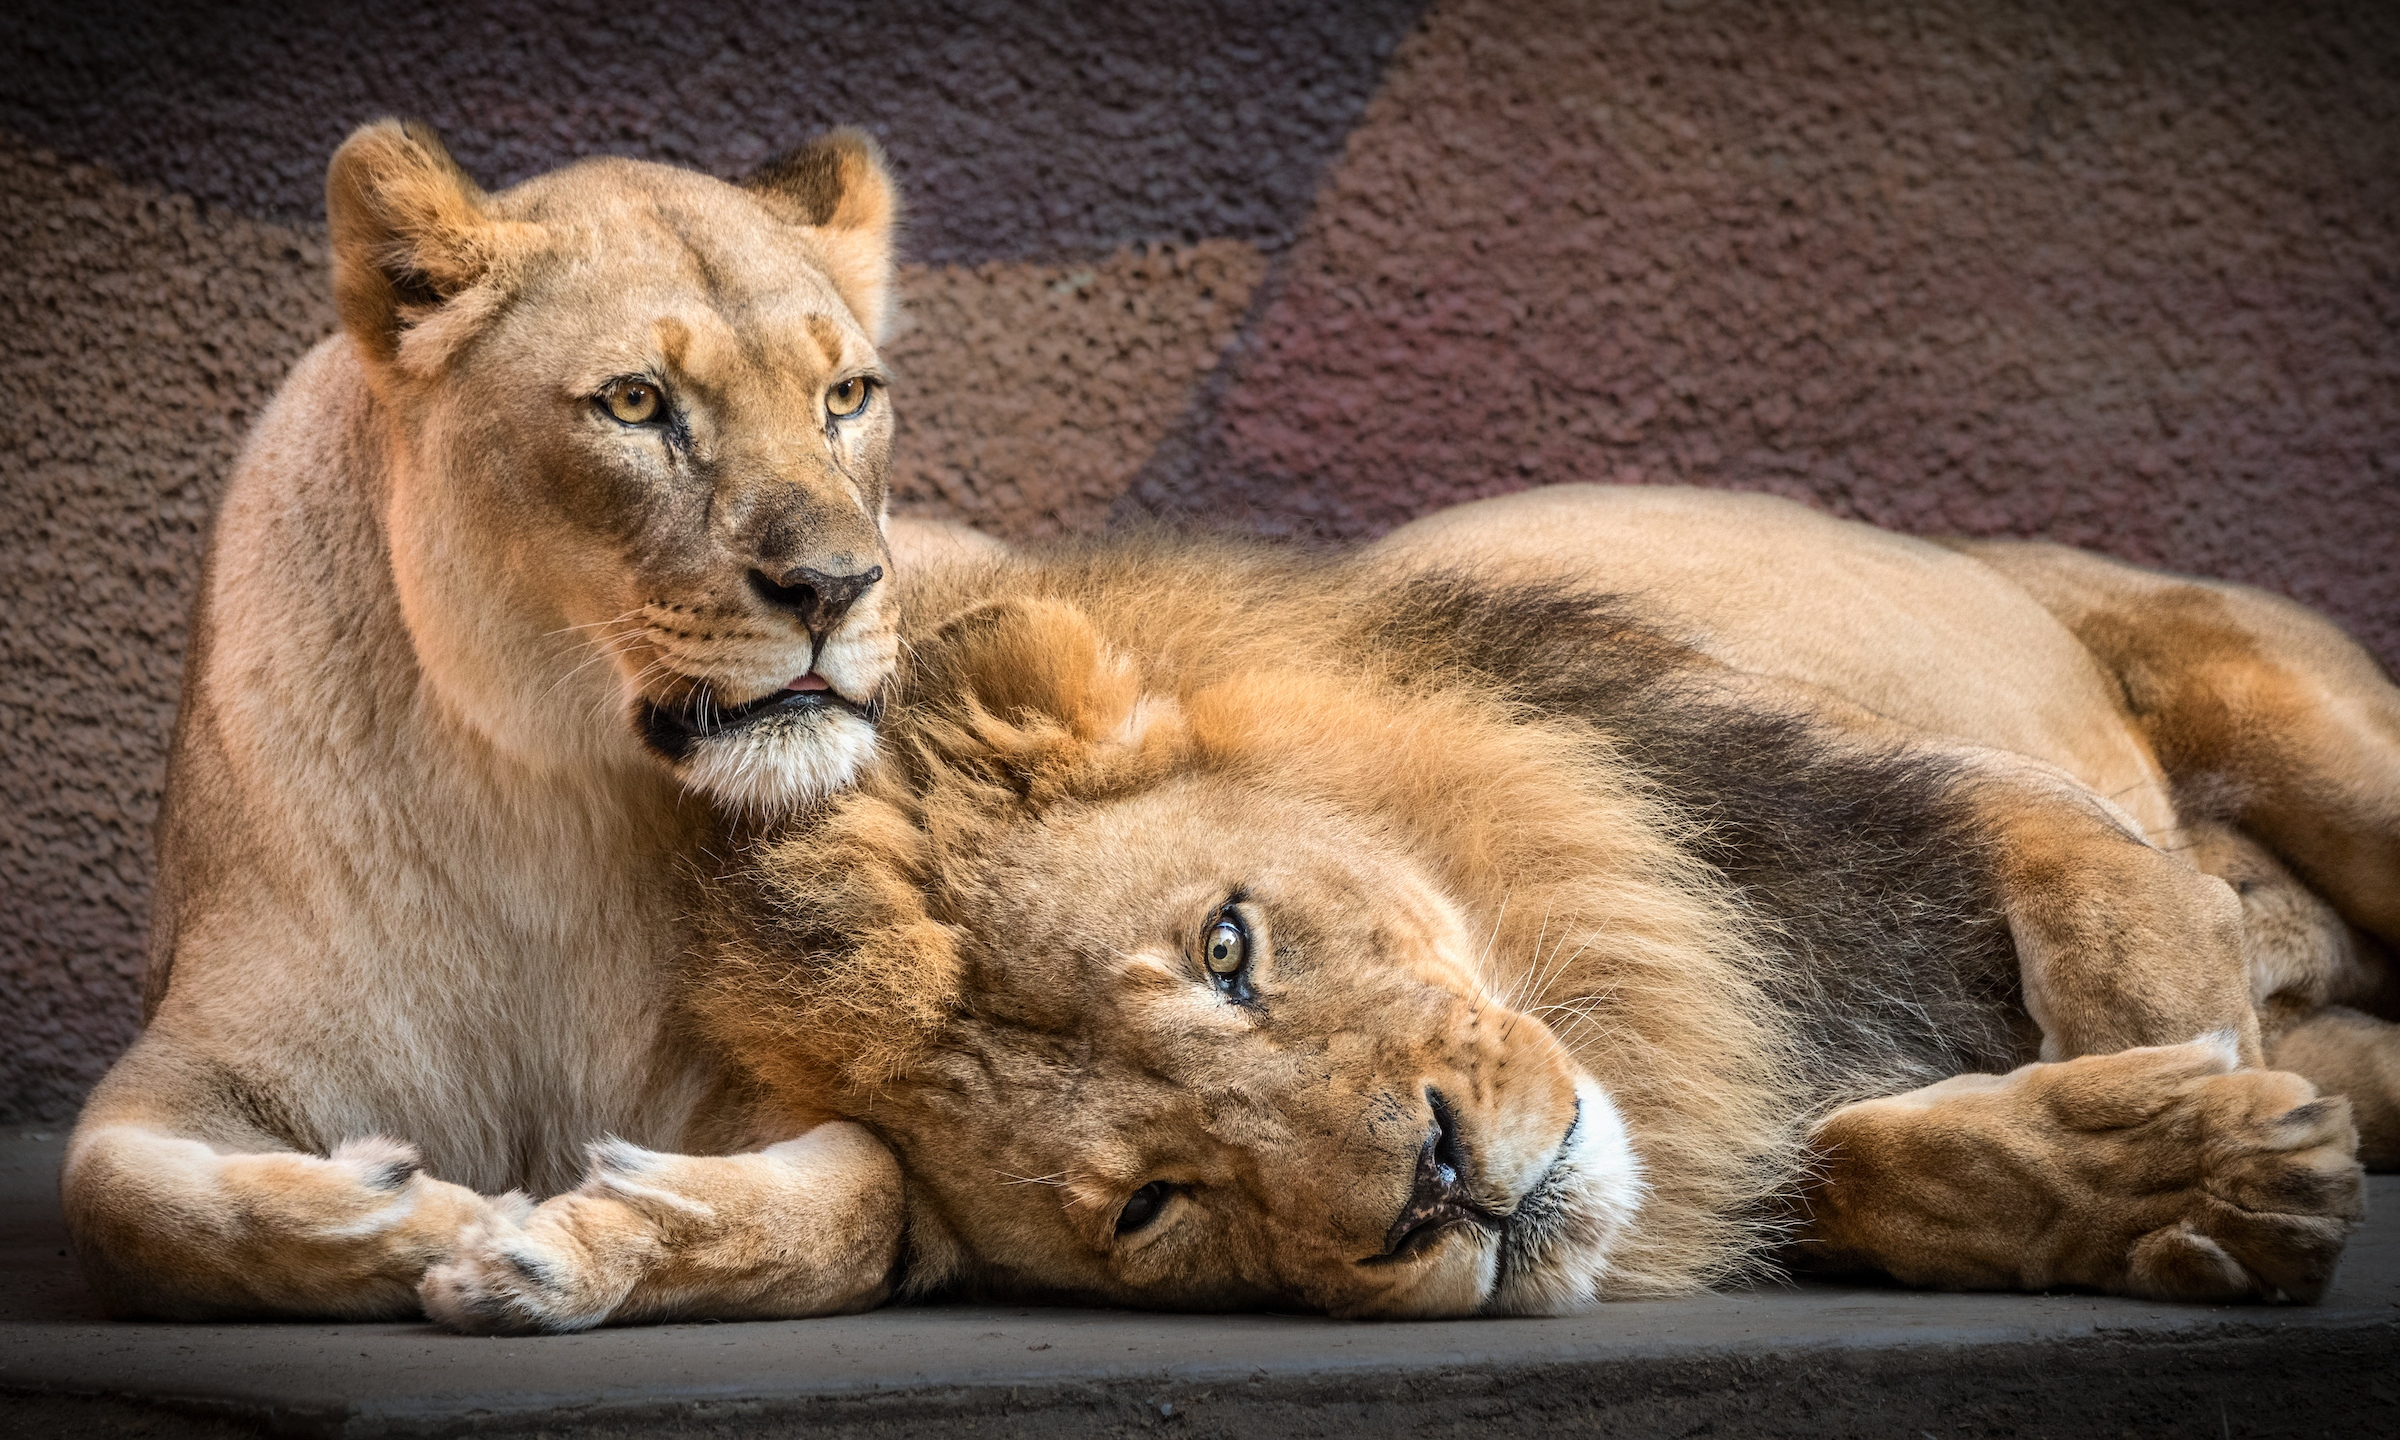 Hubert and Kalisa are seen in a photo posted by LA Zoo on July 30, 2020.